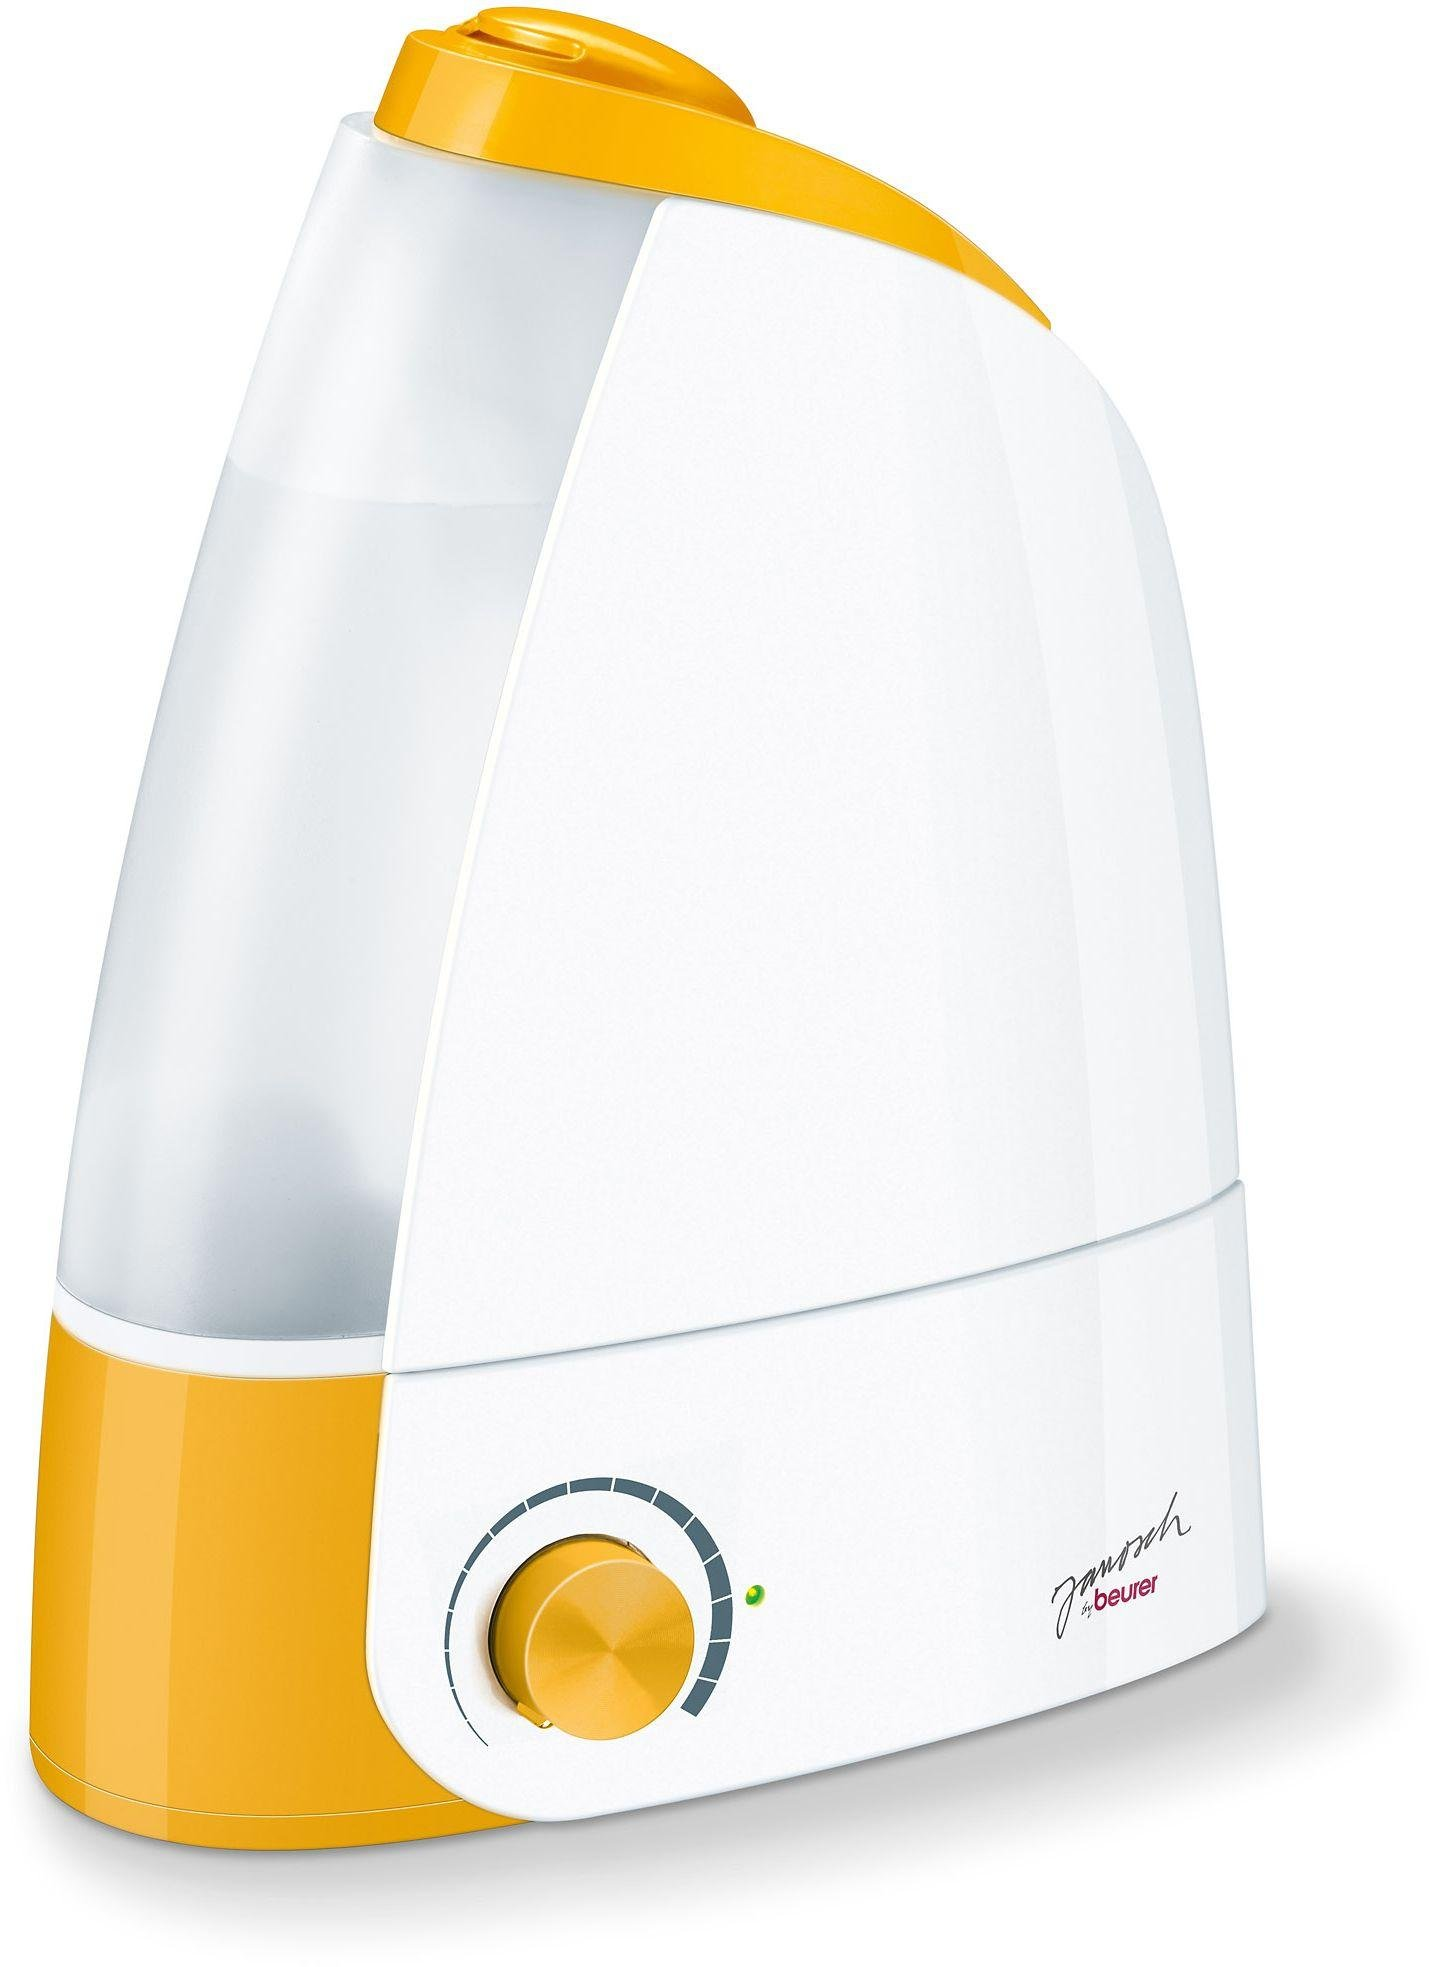 Image of Beurer - JLB 44 Air Humidifier